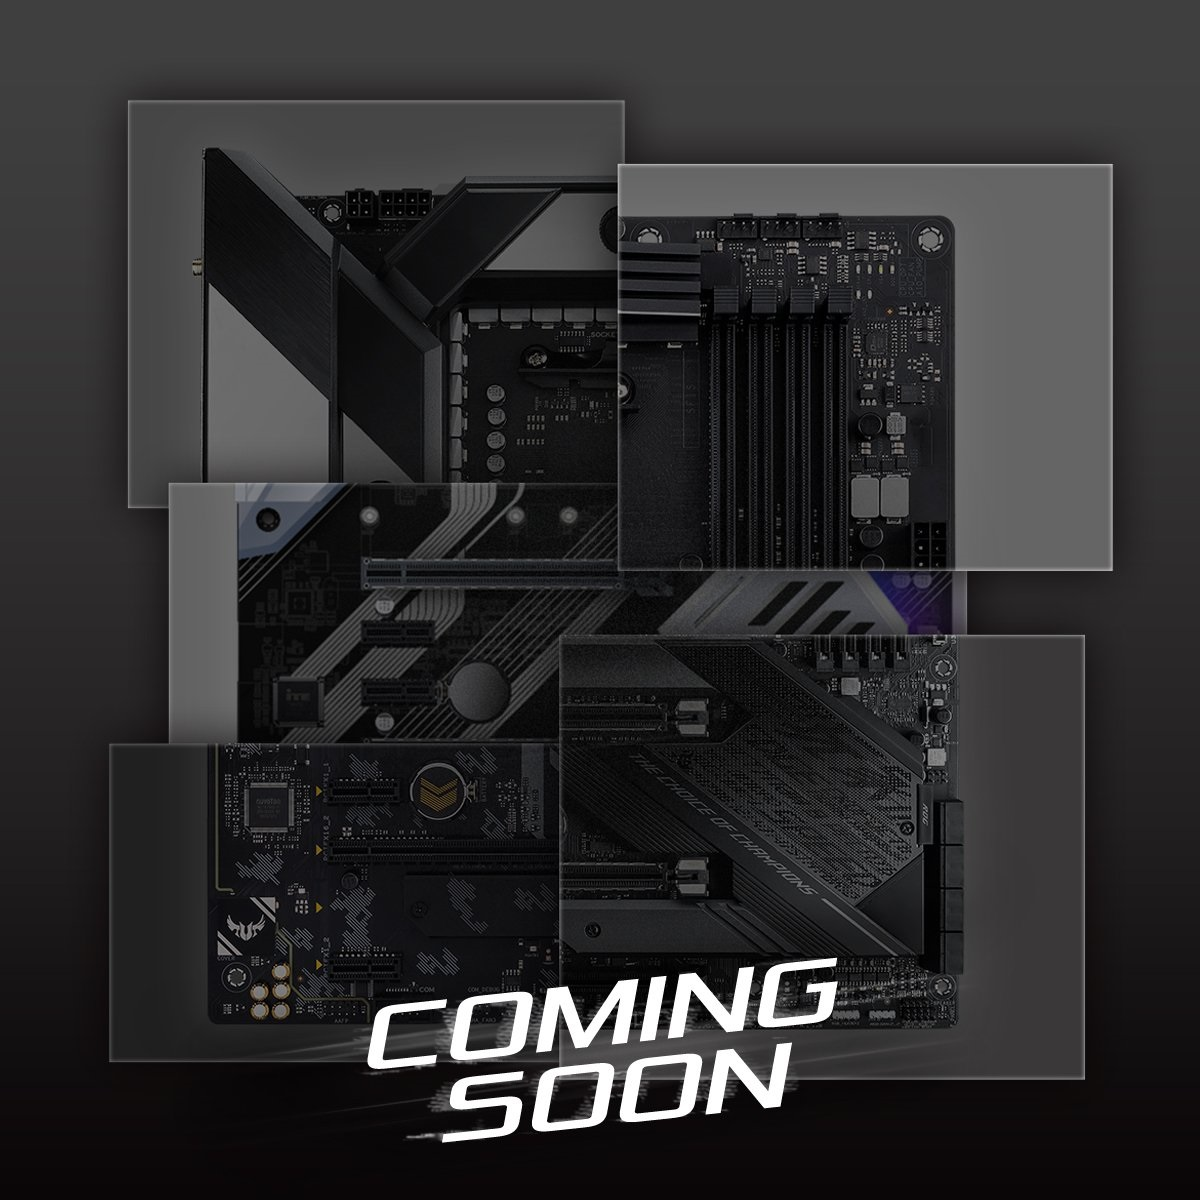 1457574c0 ASUS has teased their next-generation AMD X570 chipset powered motherboard  lineup which will be ready for AMD Ryzen 3000 CPUs. The new motherboards  include ...